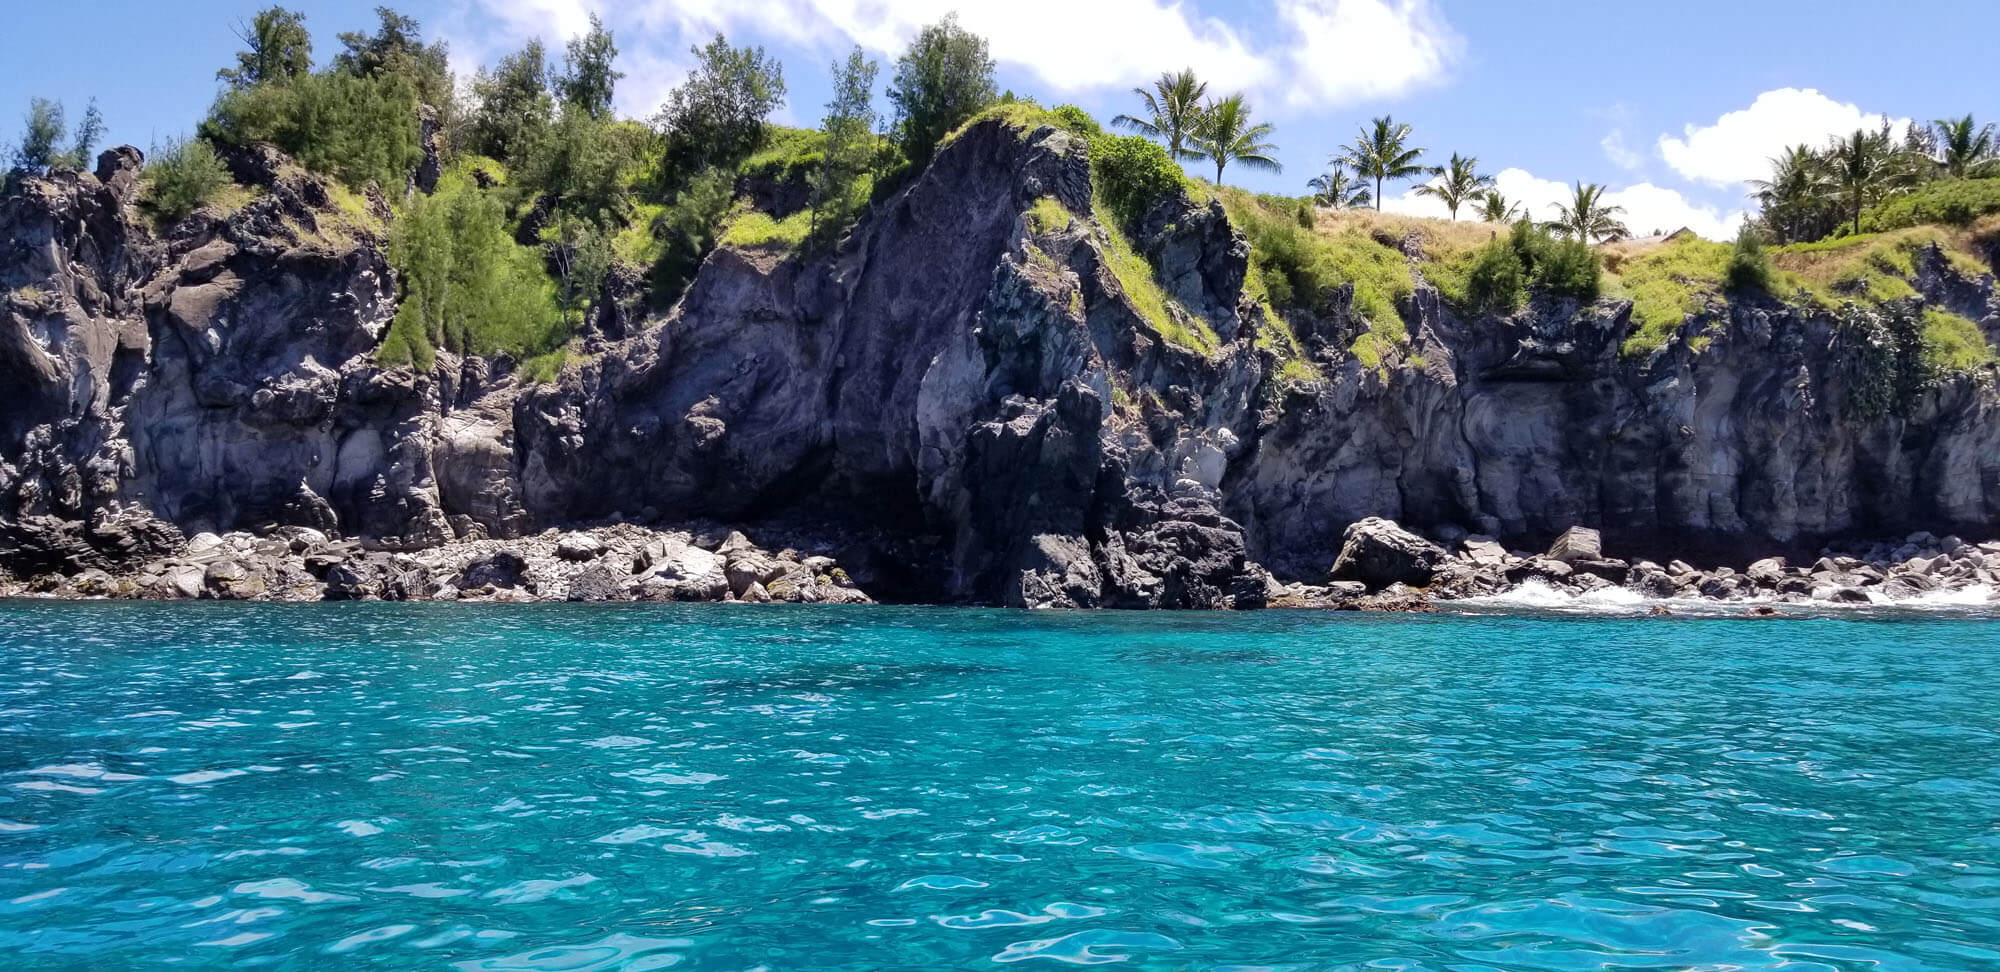 Maui Sightseeing Boat Tours